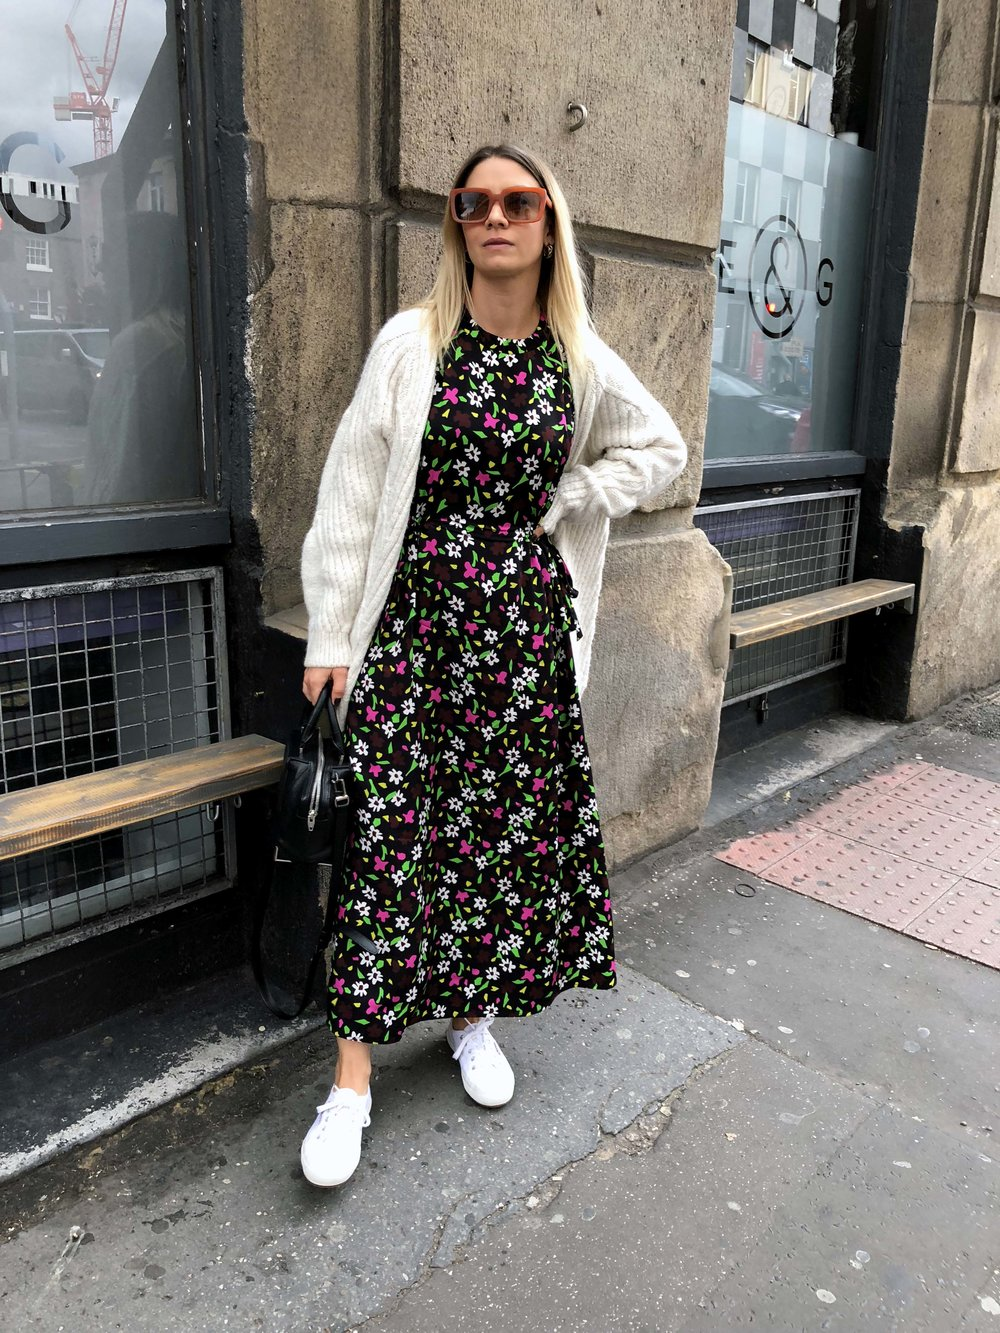 TOPSHOP BOUTIQUE DRESS, CHUNKY CARDIGAN, NORTHERN MAGPIE, MANCHESTER BRUNCH PLACES 1